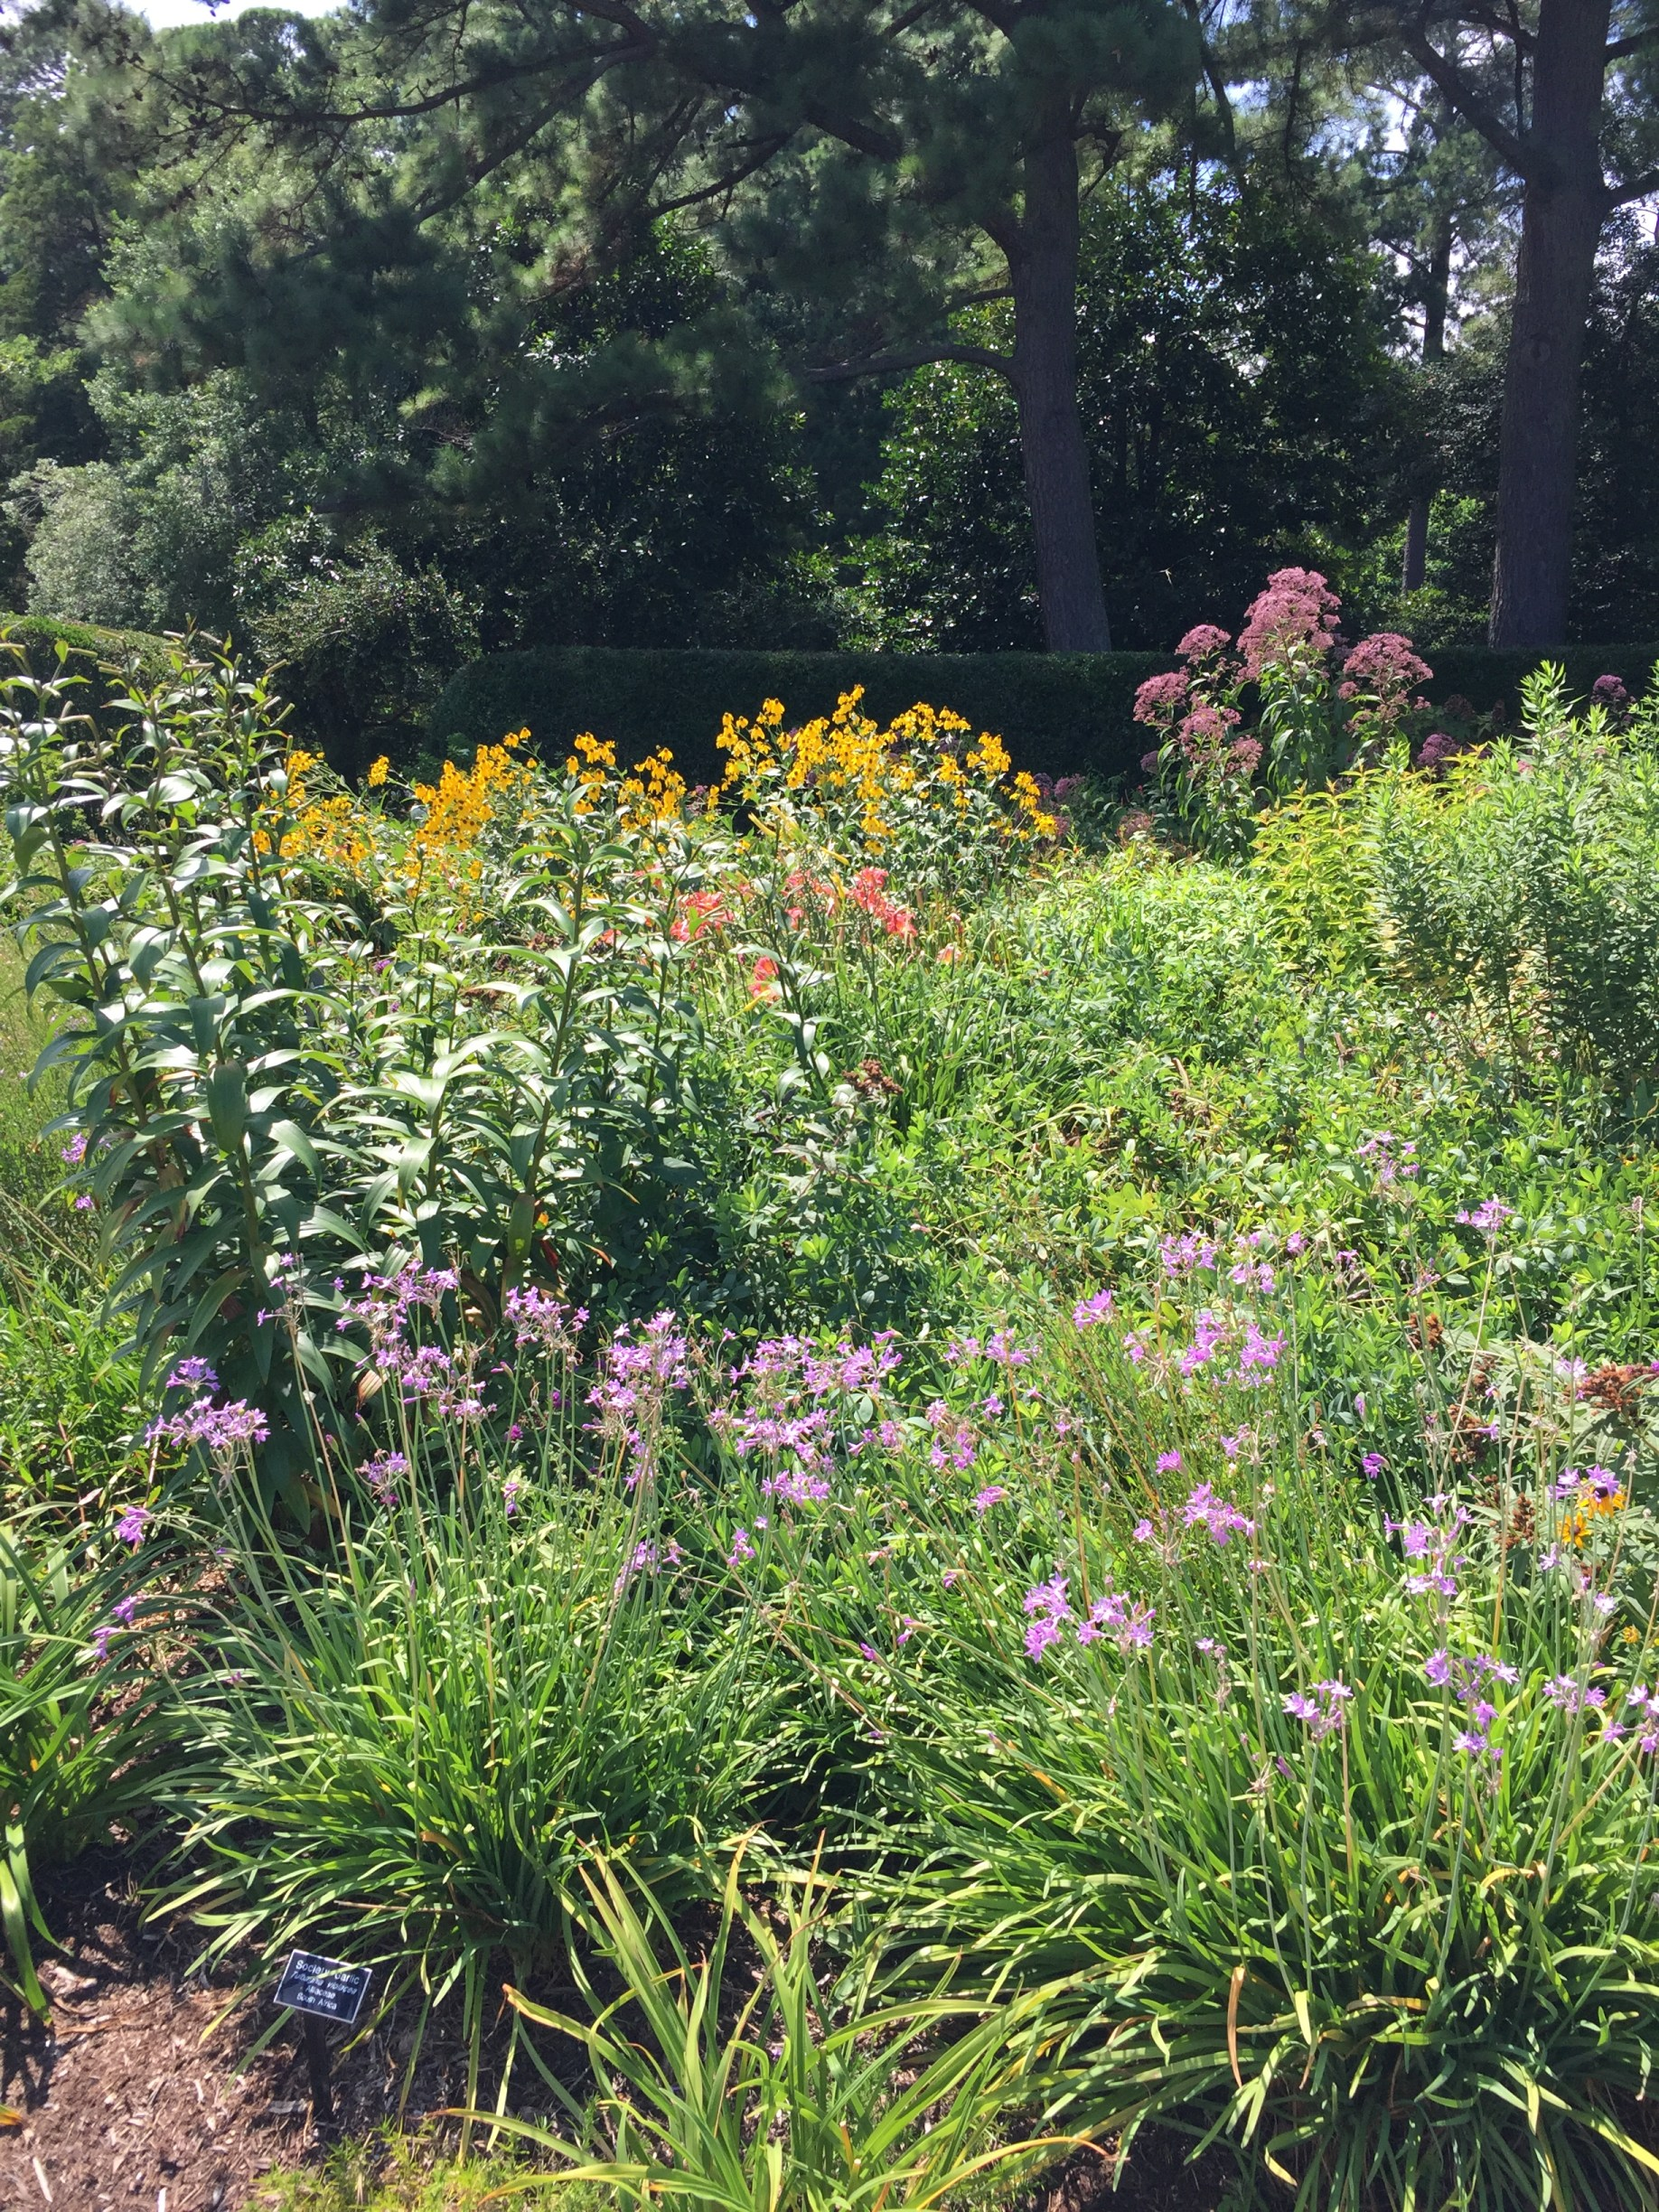 The Perennial Garden overflows with colorful plantings. Photo © Elaine Mills